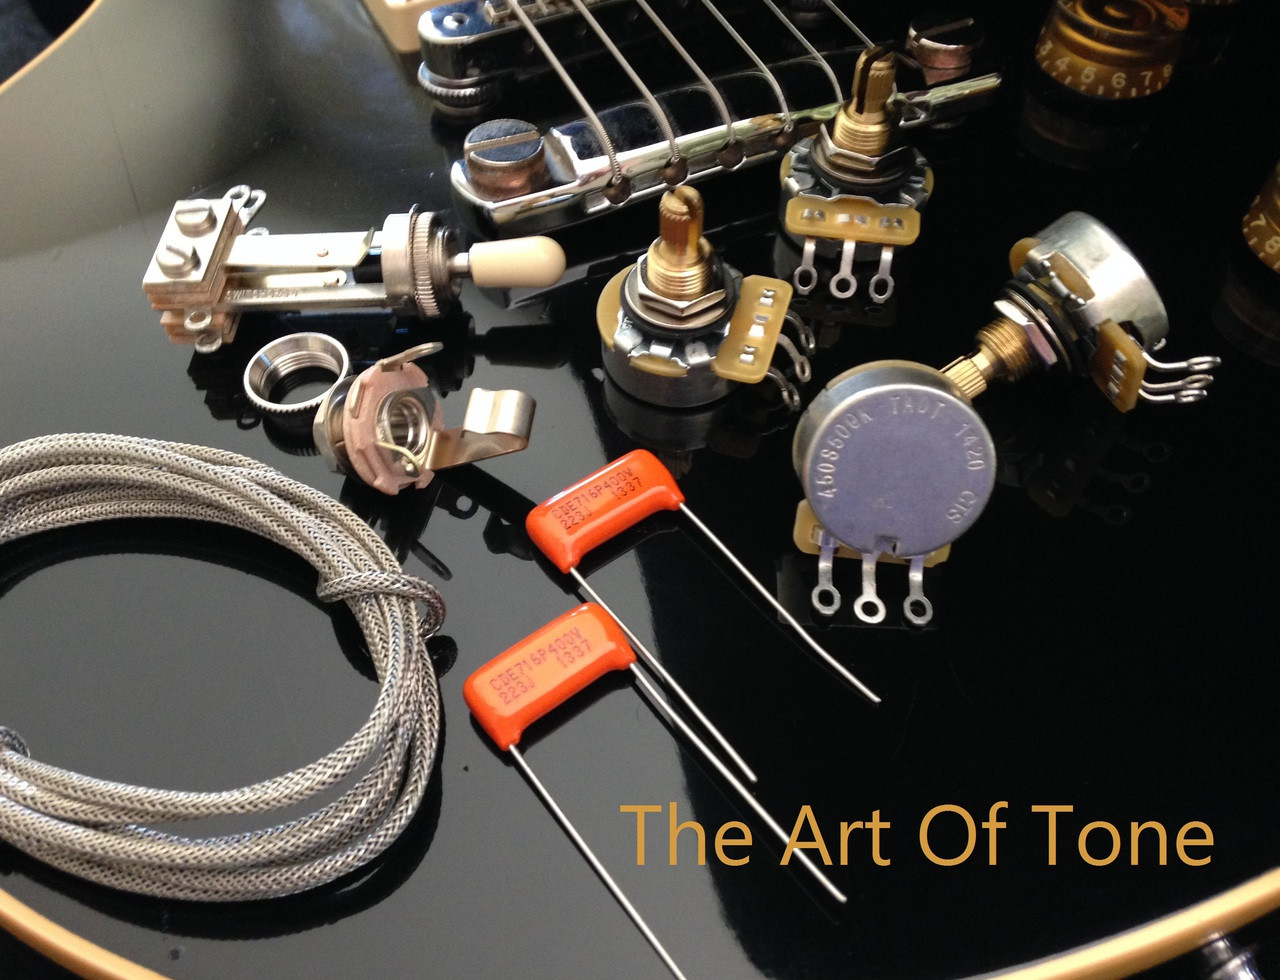 TAOT Wiring Kit - Gibson Les Paul - Short Shaft - CTS 525K - Orange Drop Capacitors  The Art Of Tone TAOT Art Of Tone Antonio Johnson Photography Zemaitis guitars